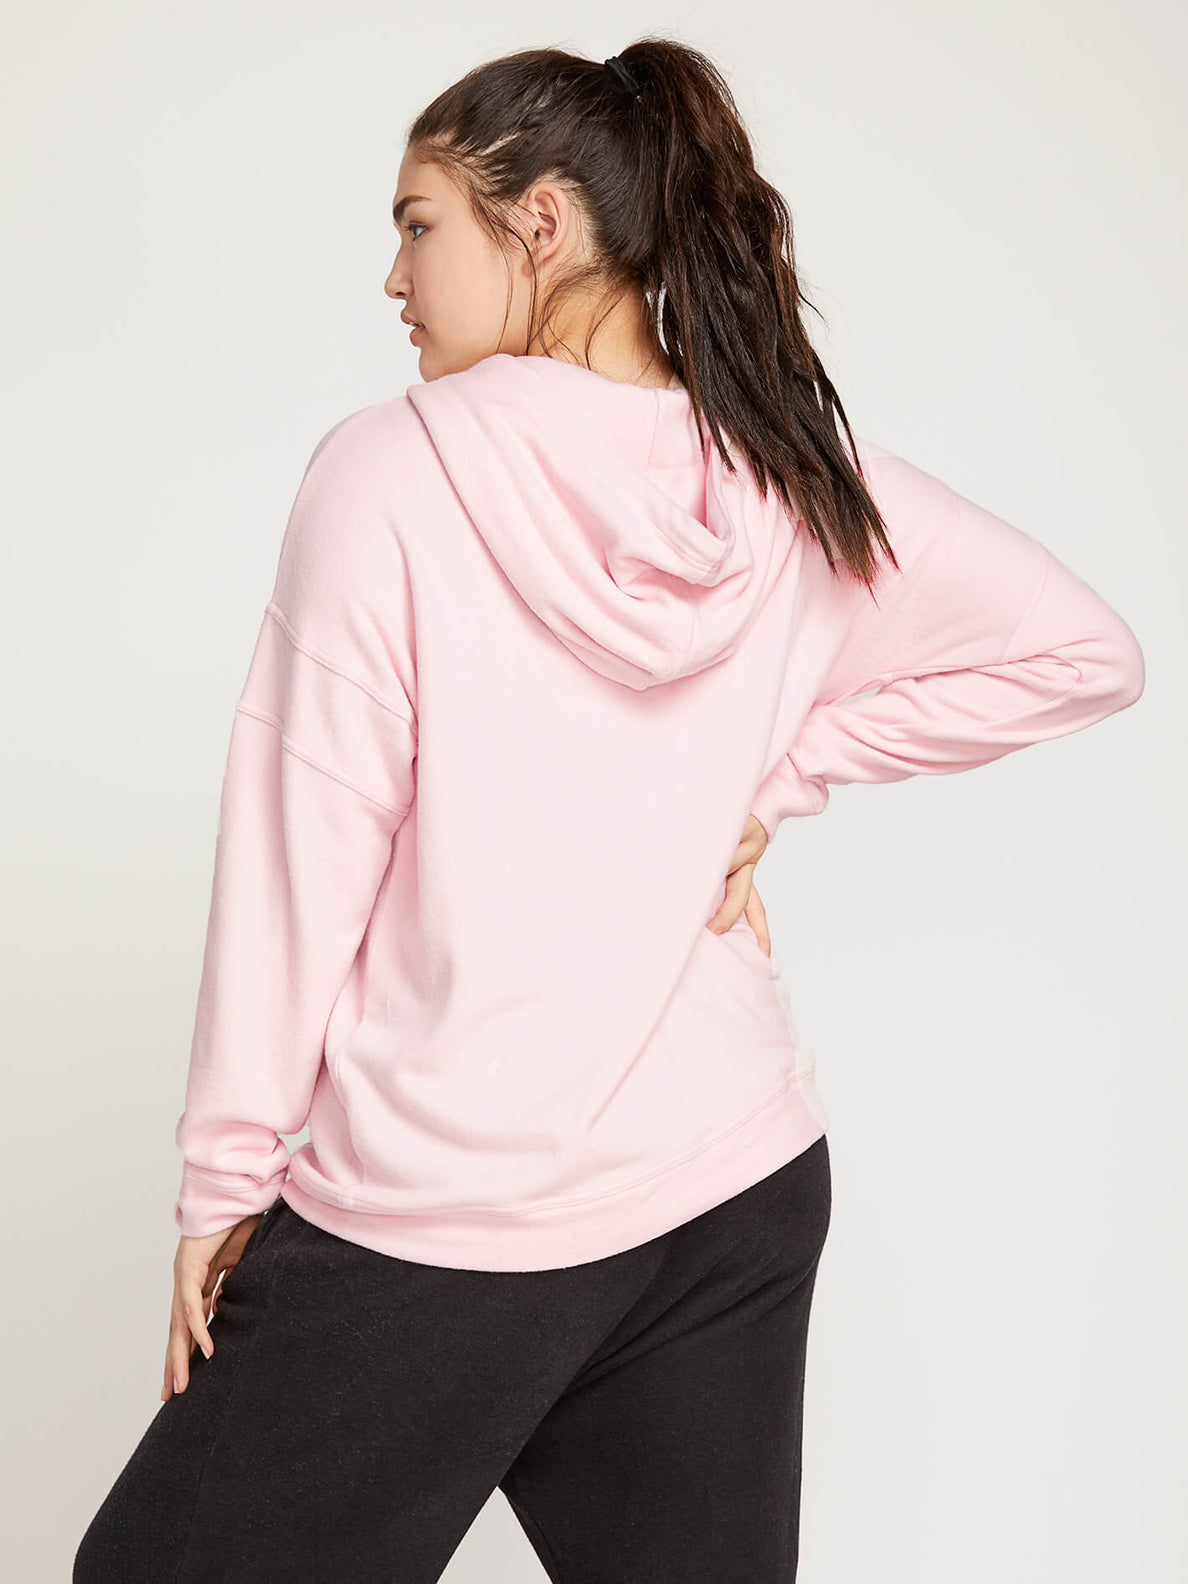 Lived In Lounge Zip Hoodie In Blush Pink, Back Extended Size View